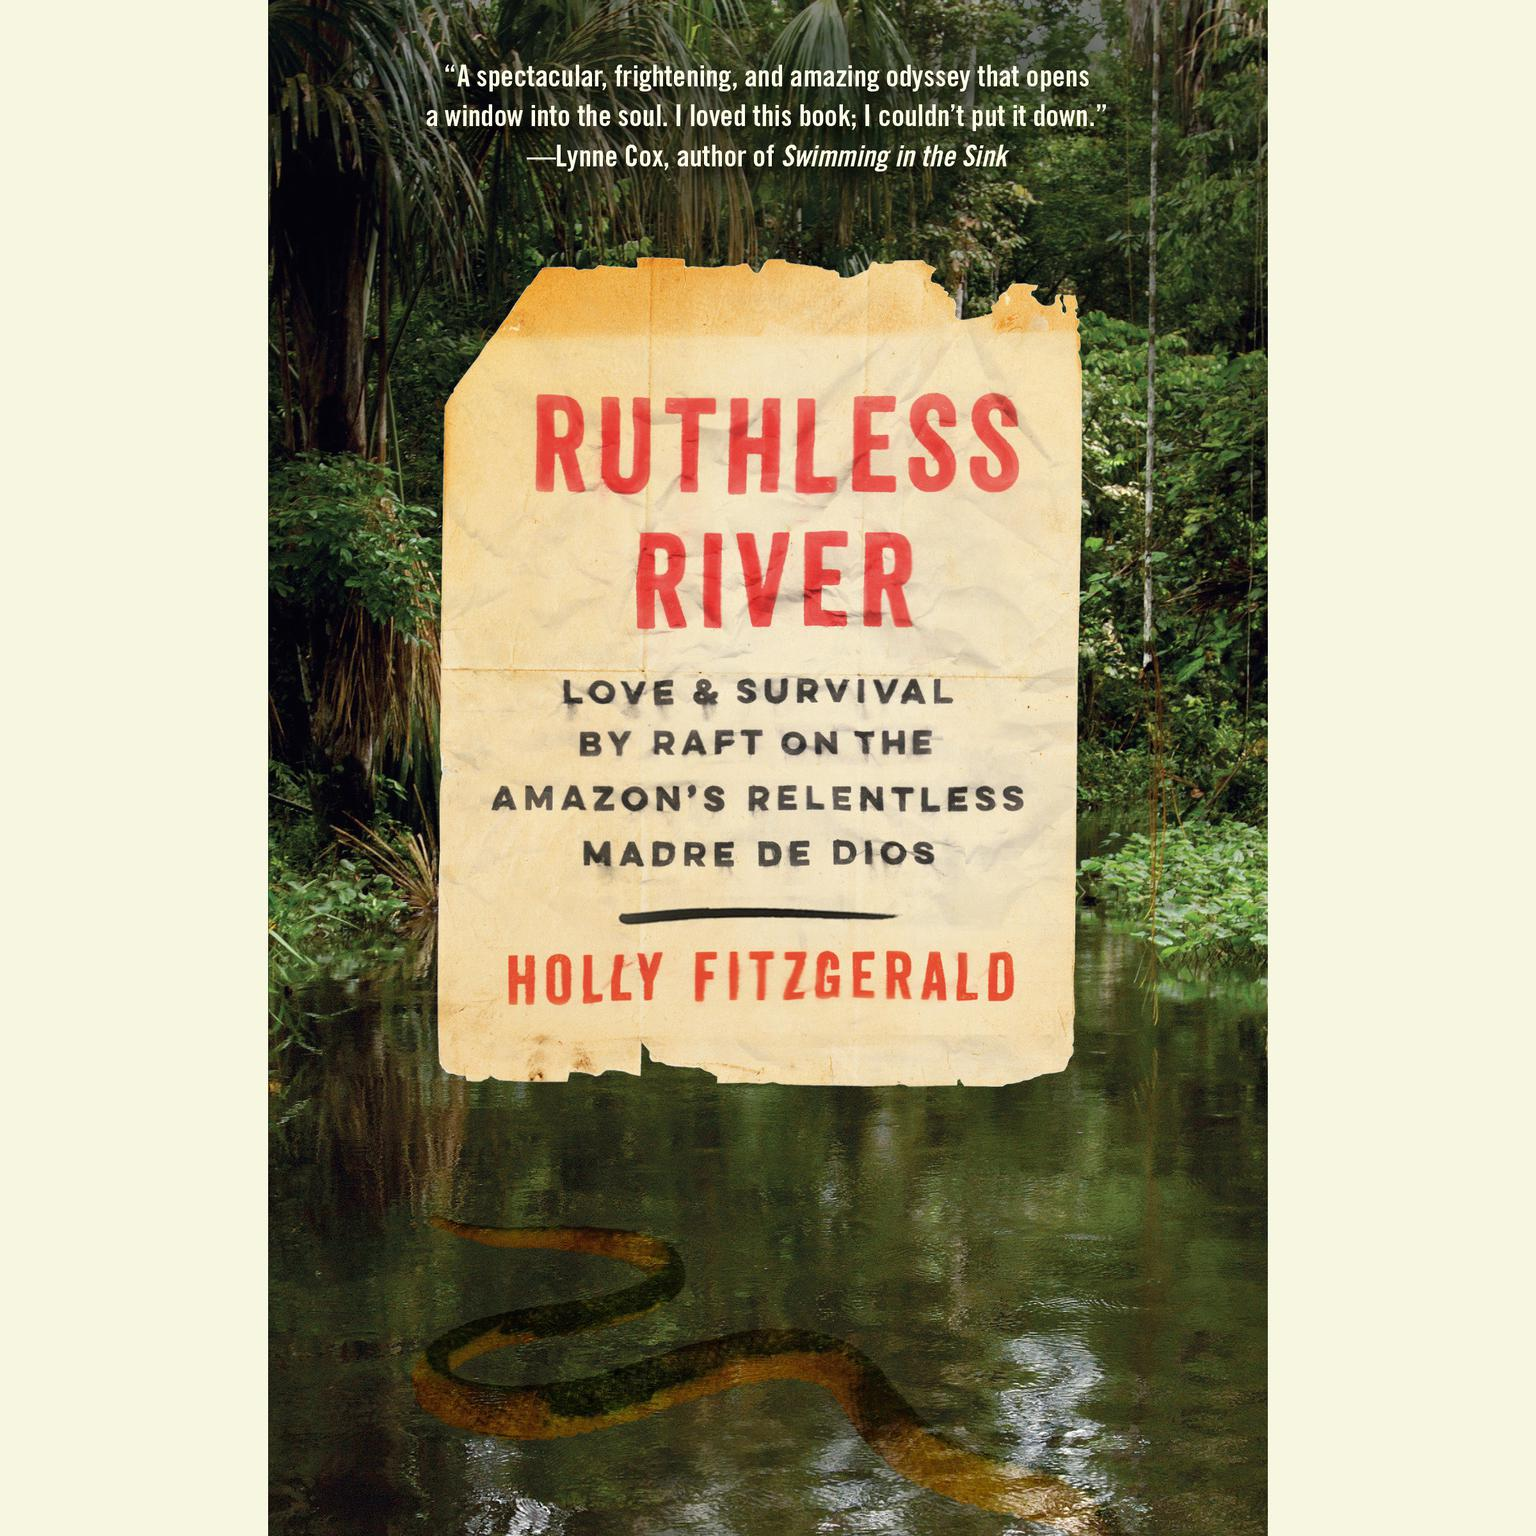 Printable Ruthless River: Love and Survival by Raft on the Amazon's Relentless Madre de Dios Audiobook Cover Art